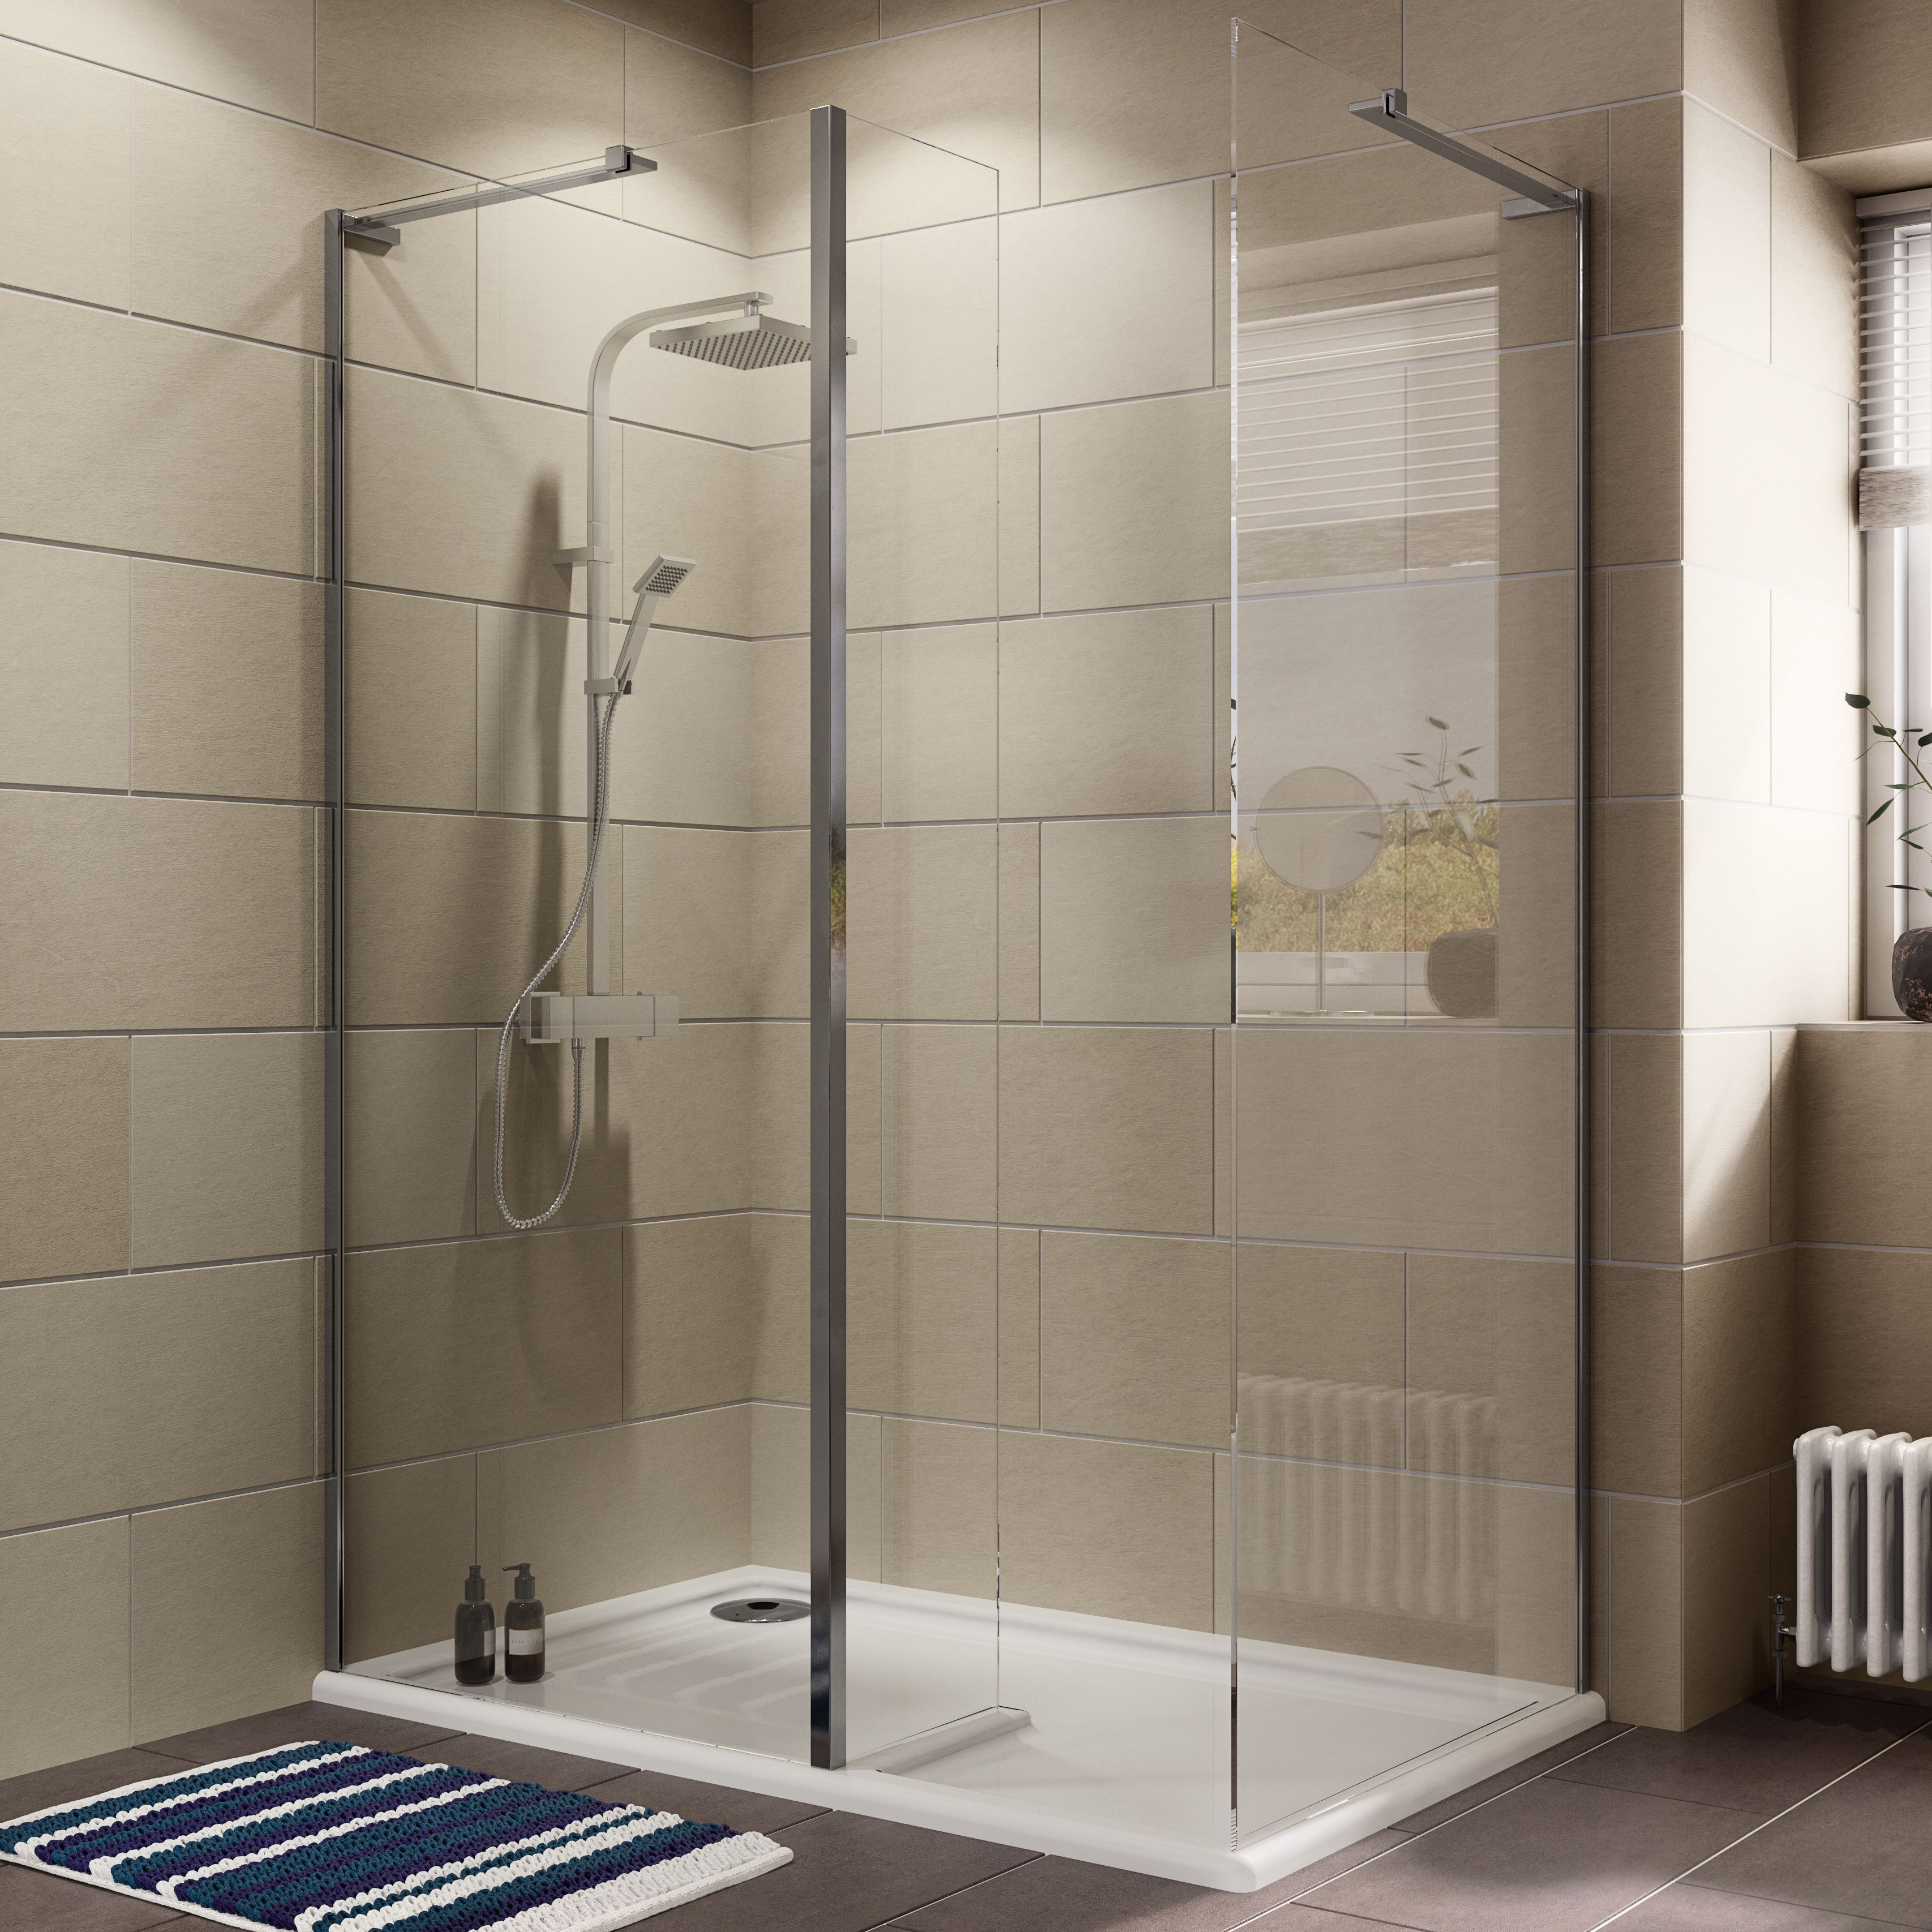 Cooke & Lewis Luxuriant Rectangular Lh Shower Enclosure, Tray & Waste Pack With Walk-in Entry (w)1400mm (d)880mm